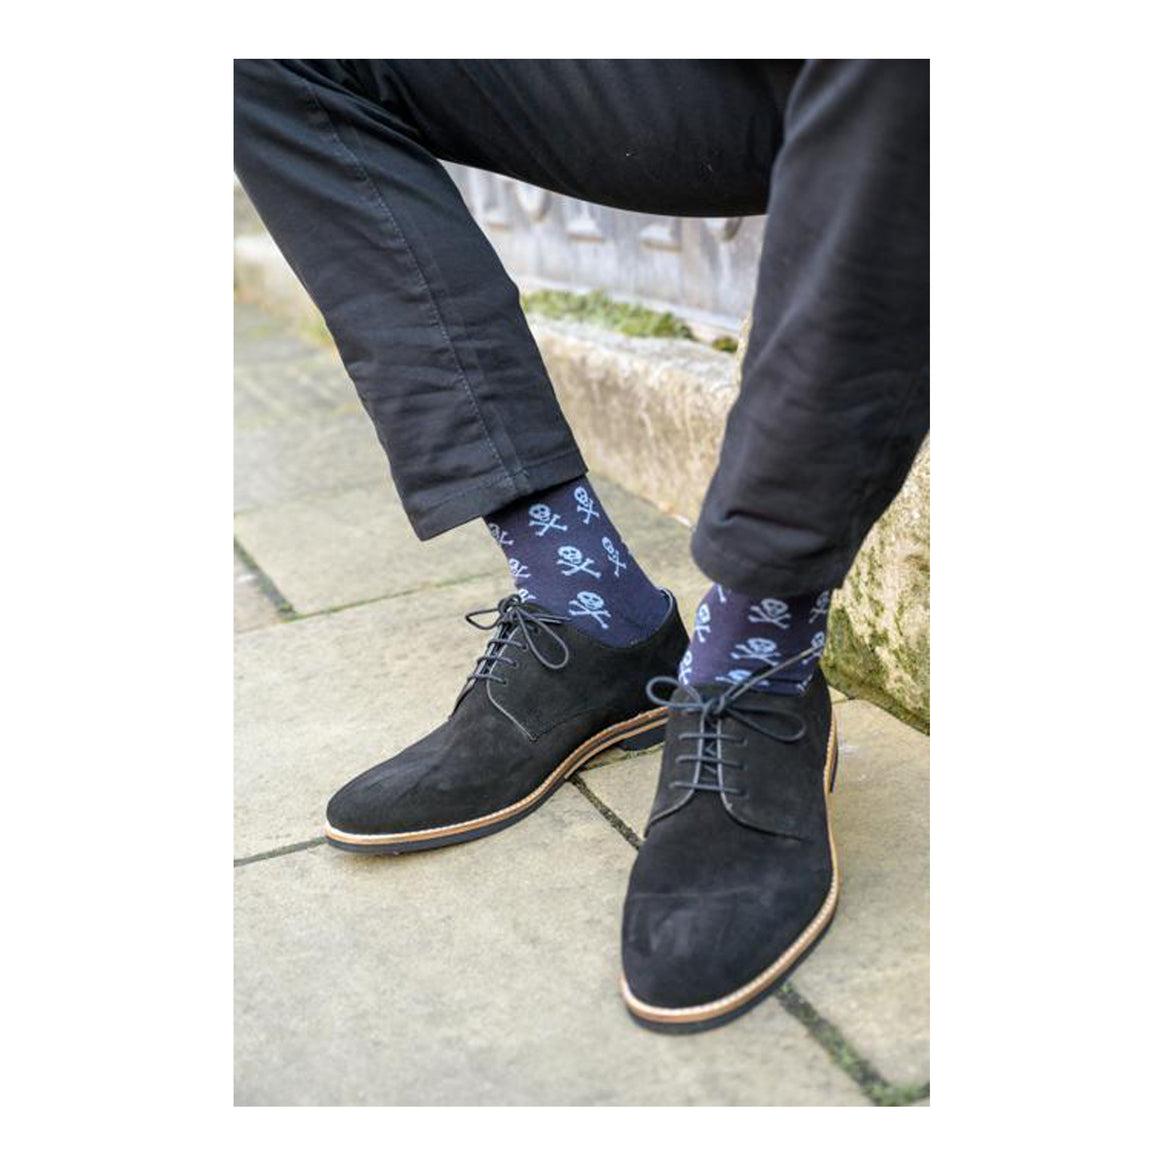 Skull Bamboo Socks for Men in Navy